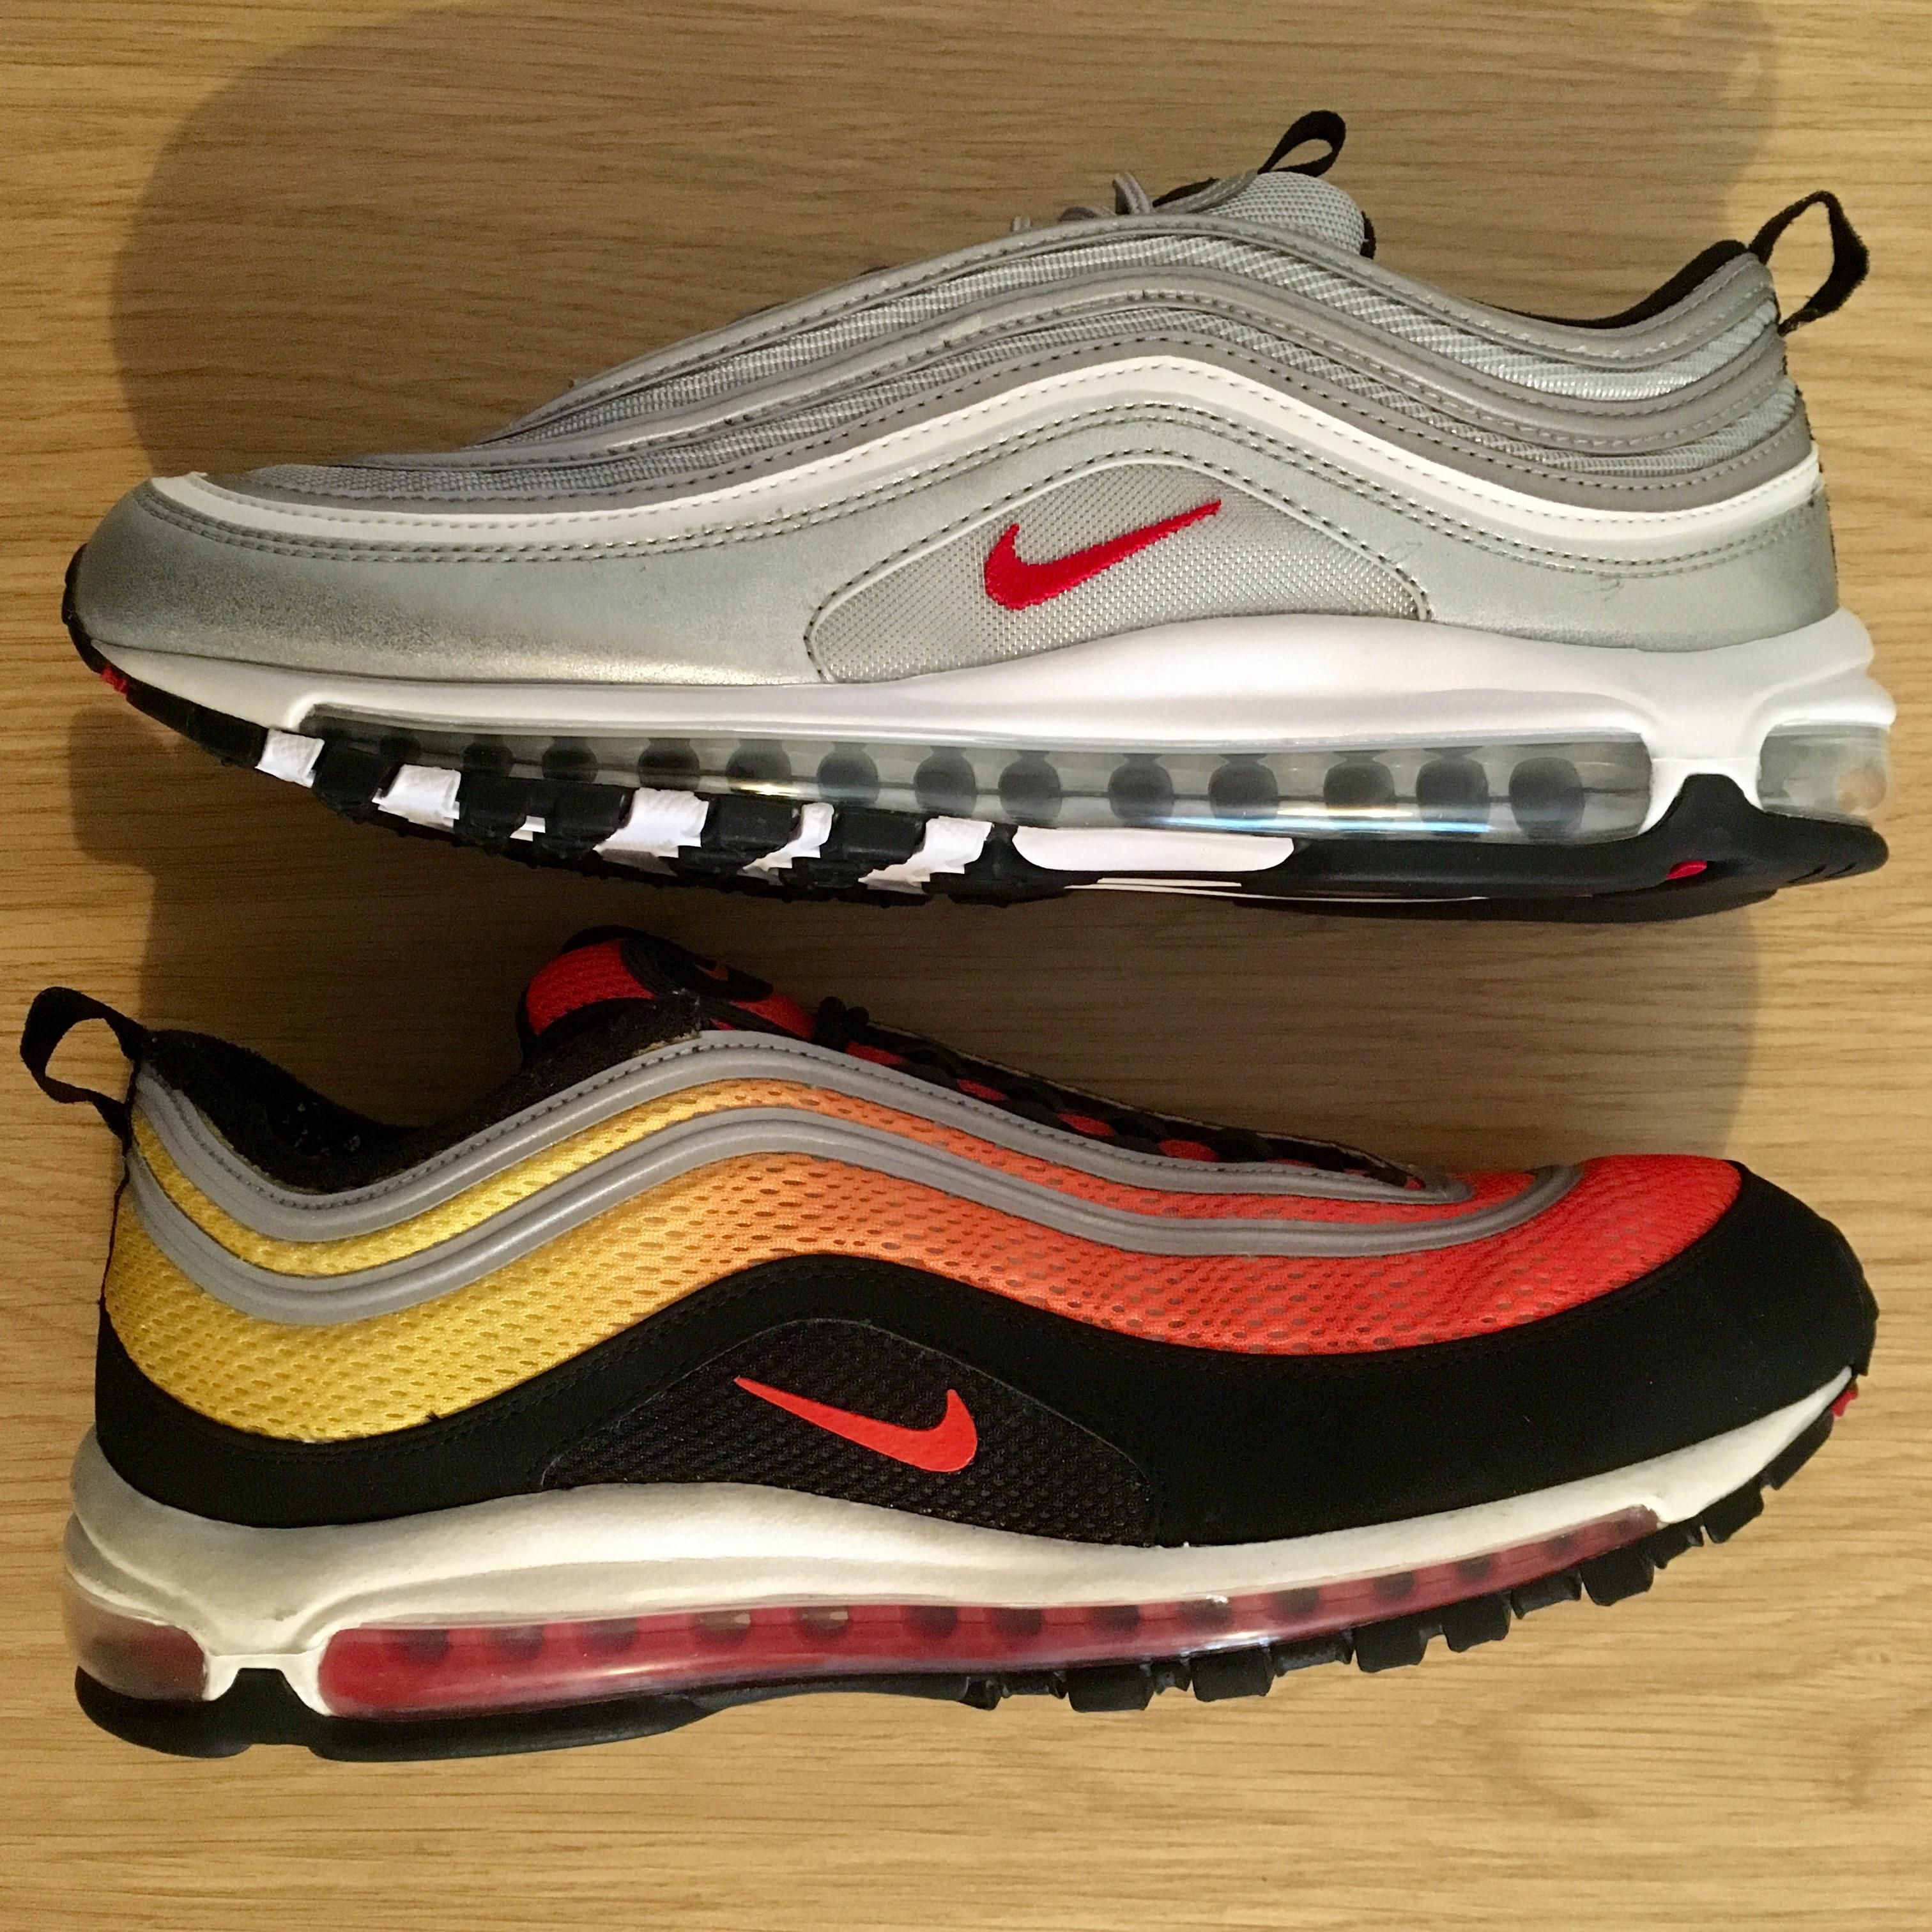 Air Max 97 - Silver Bullet / Sunset